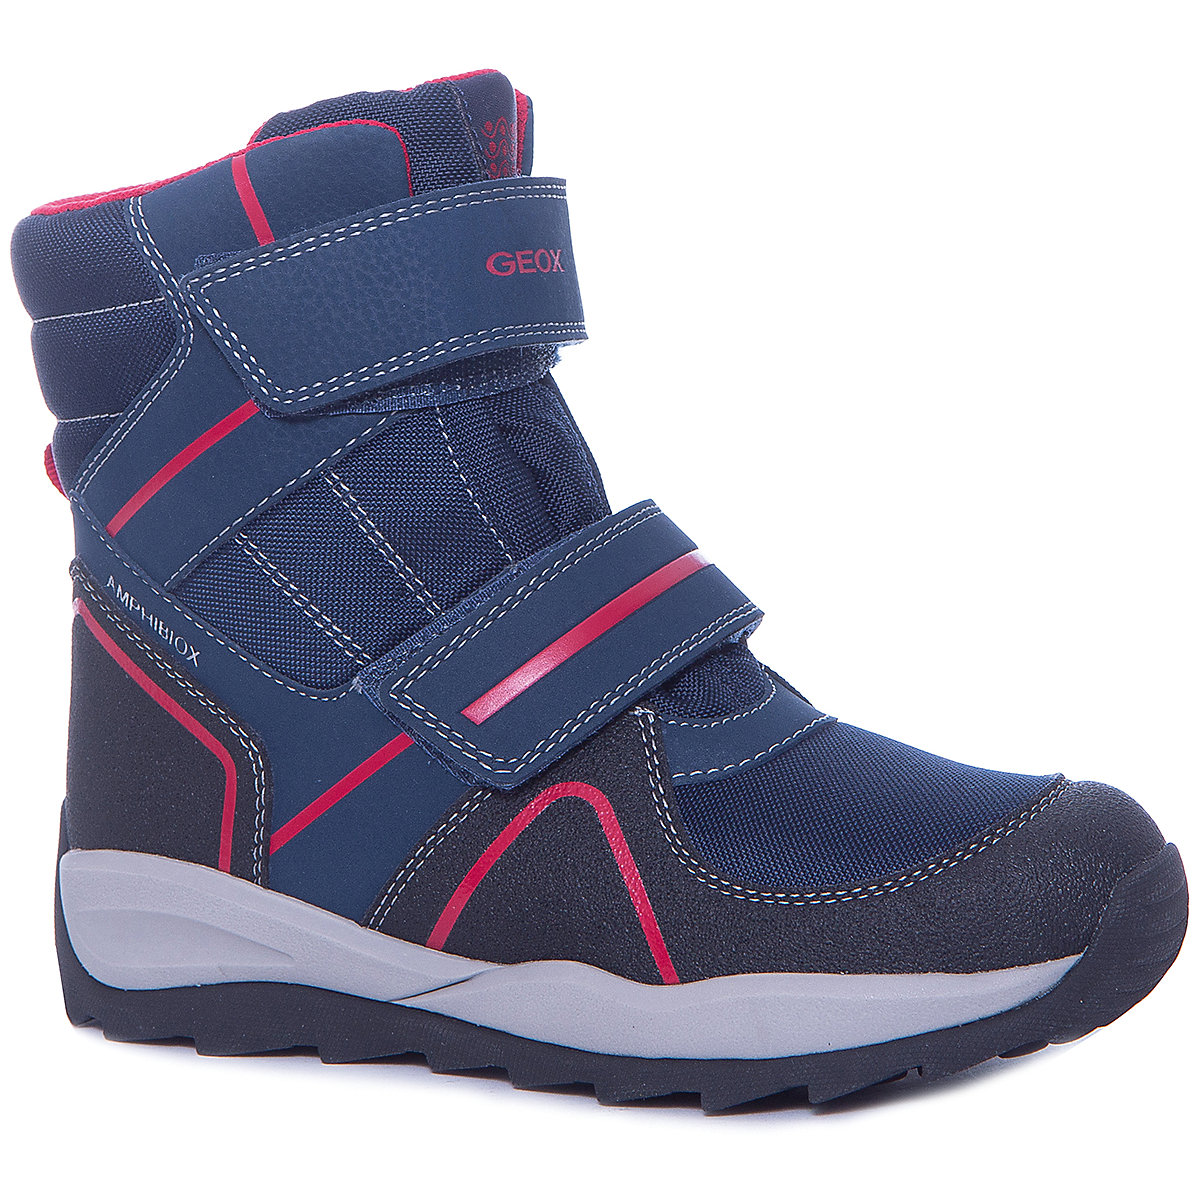 GEOX Boots 8786596 baby shoes For boy faux fur Winter MTpromo geox boots 8786502 baby shoes for boy faux fur winter